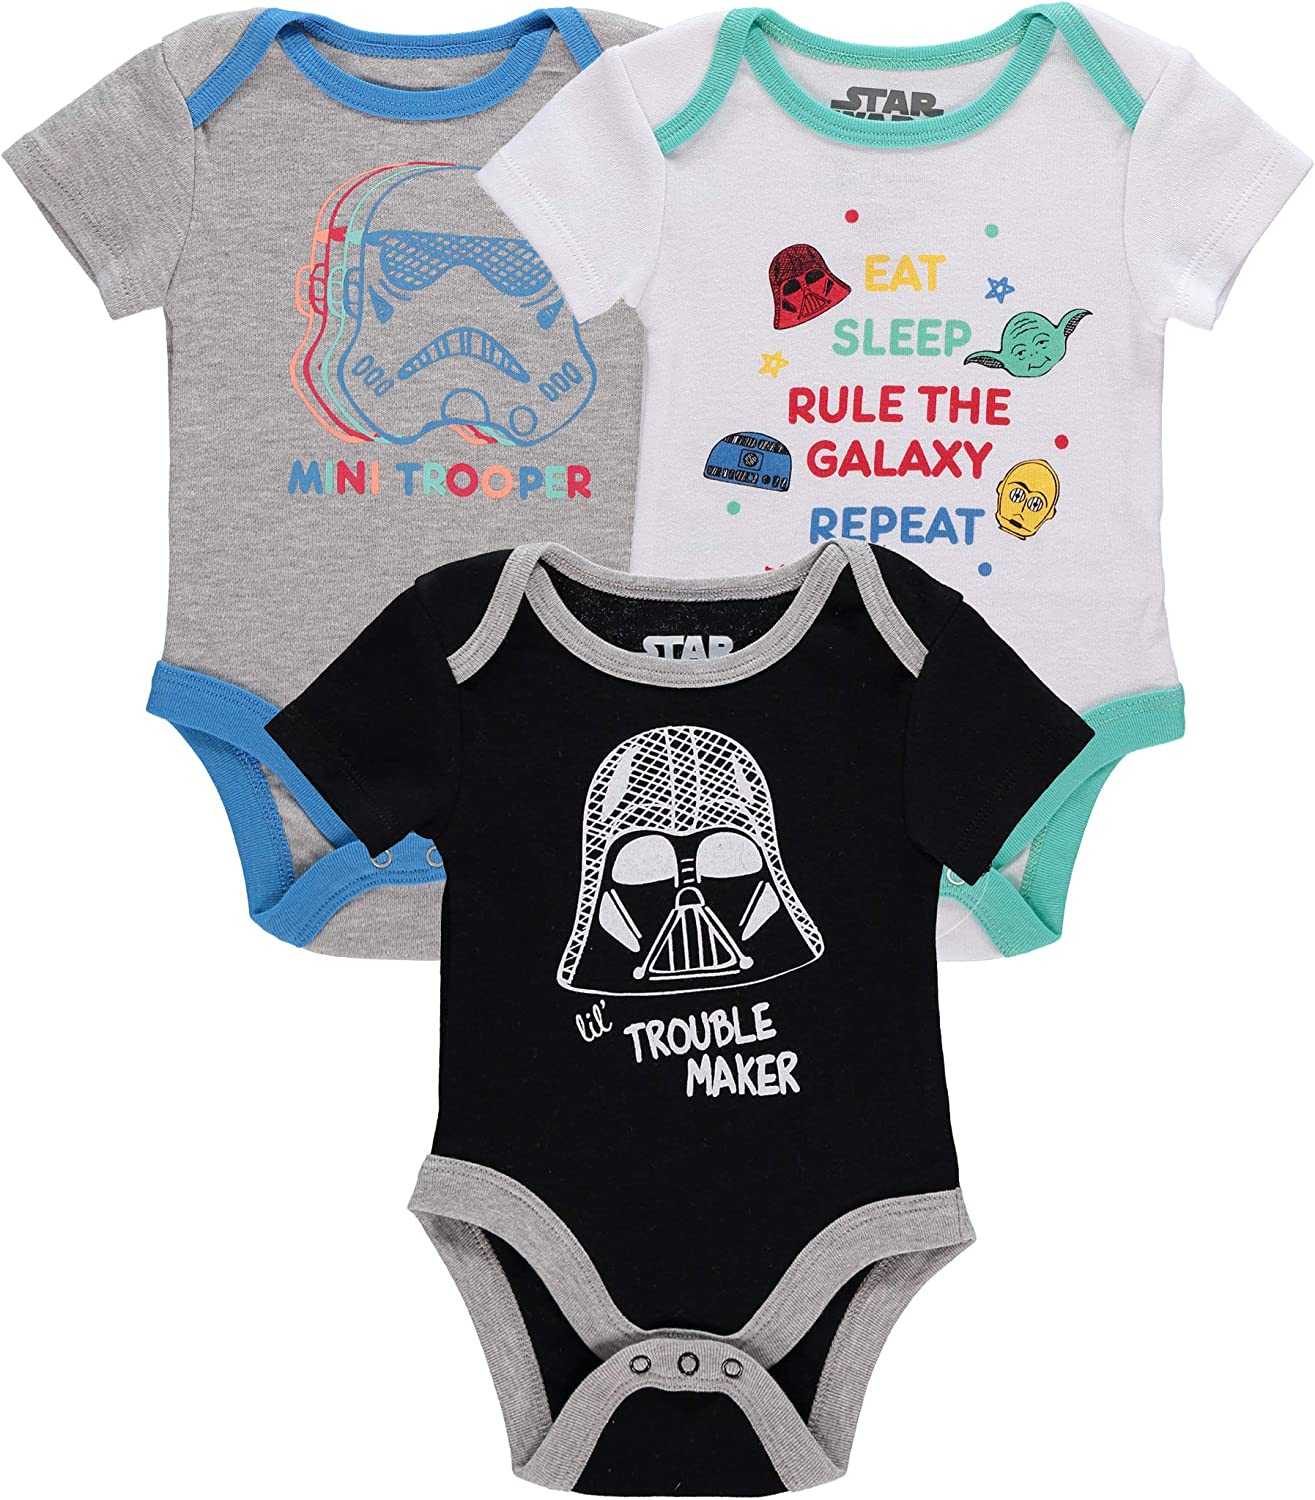 Disney baby-boys 3 Pack Star Wars Creeper Onesies Bodysuits: Clothing, Shoes & Jewelry